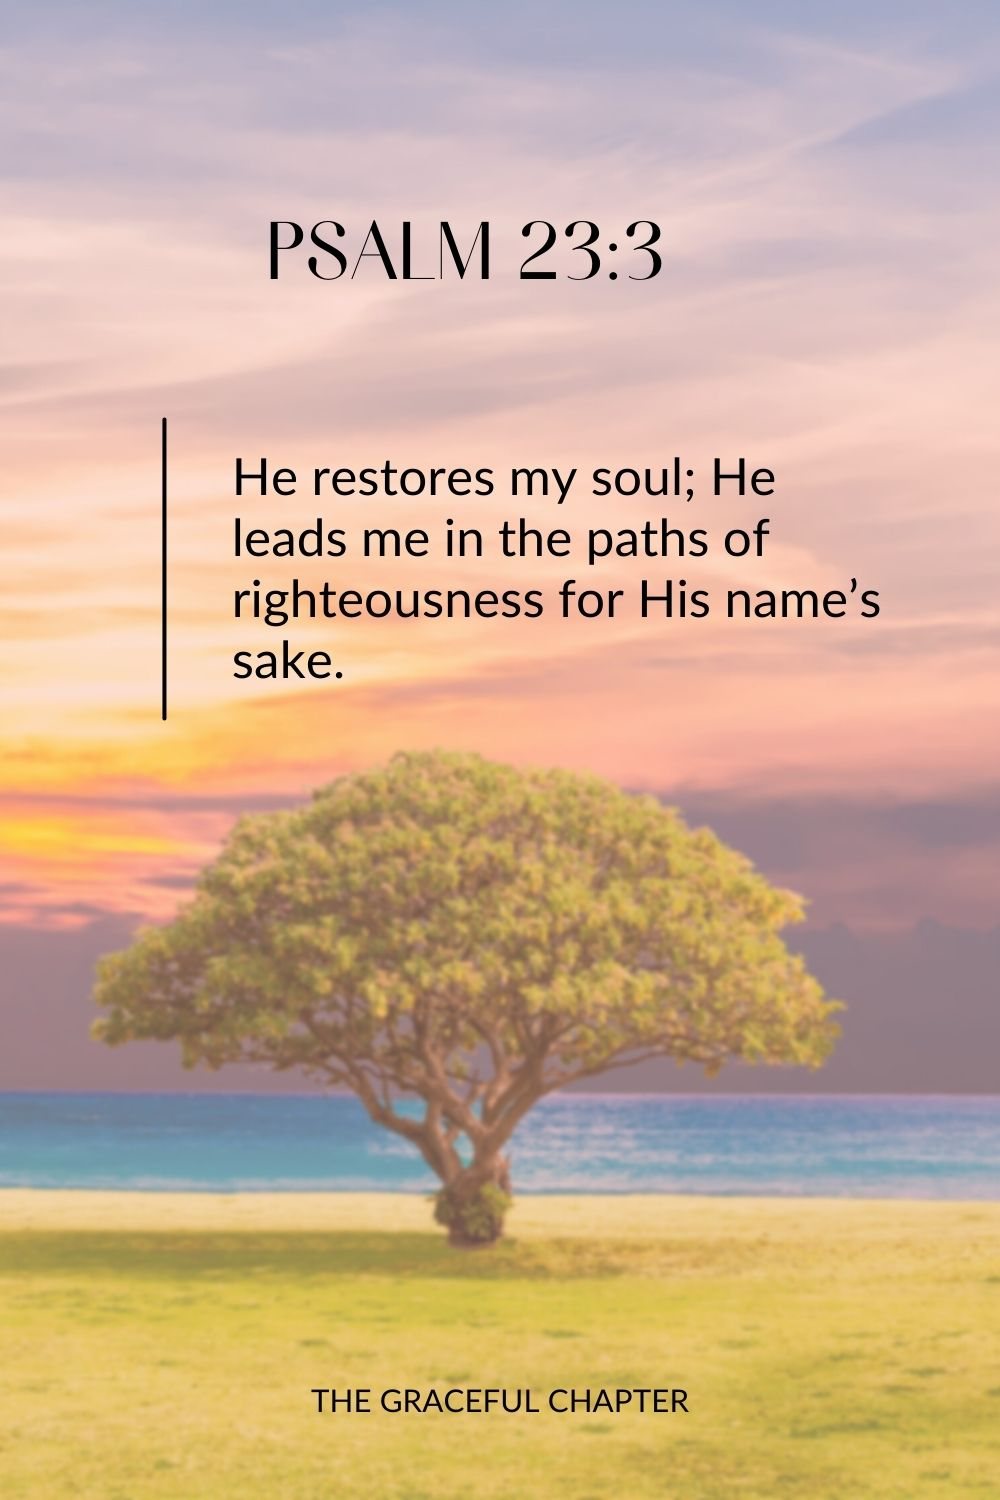 He restores my soul; He leads me in the paths of righteousness for His name's sake. Psalm 23:3